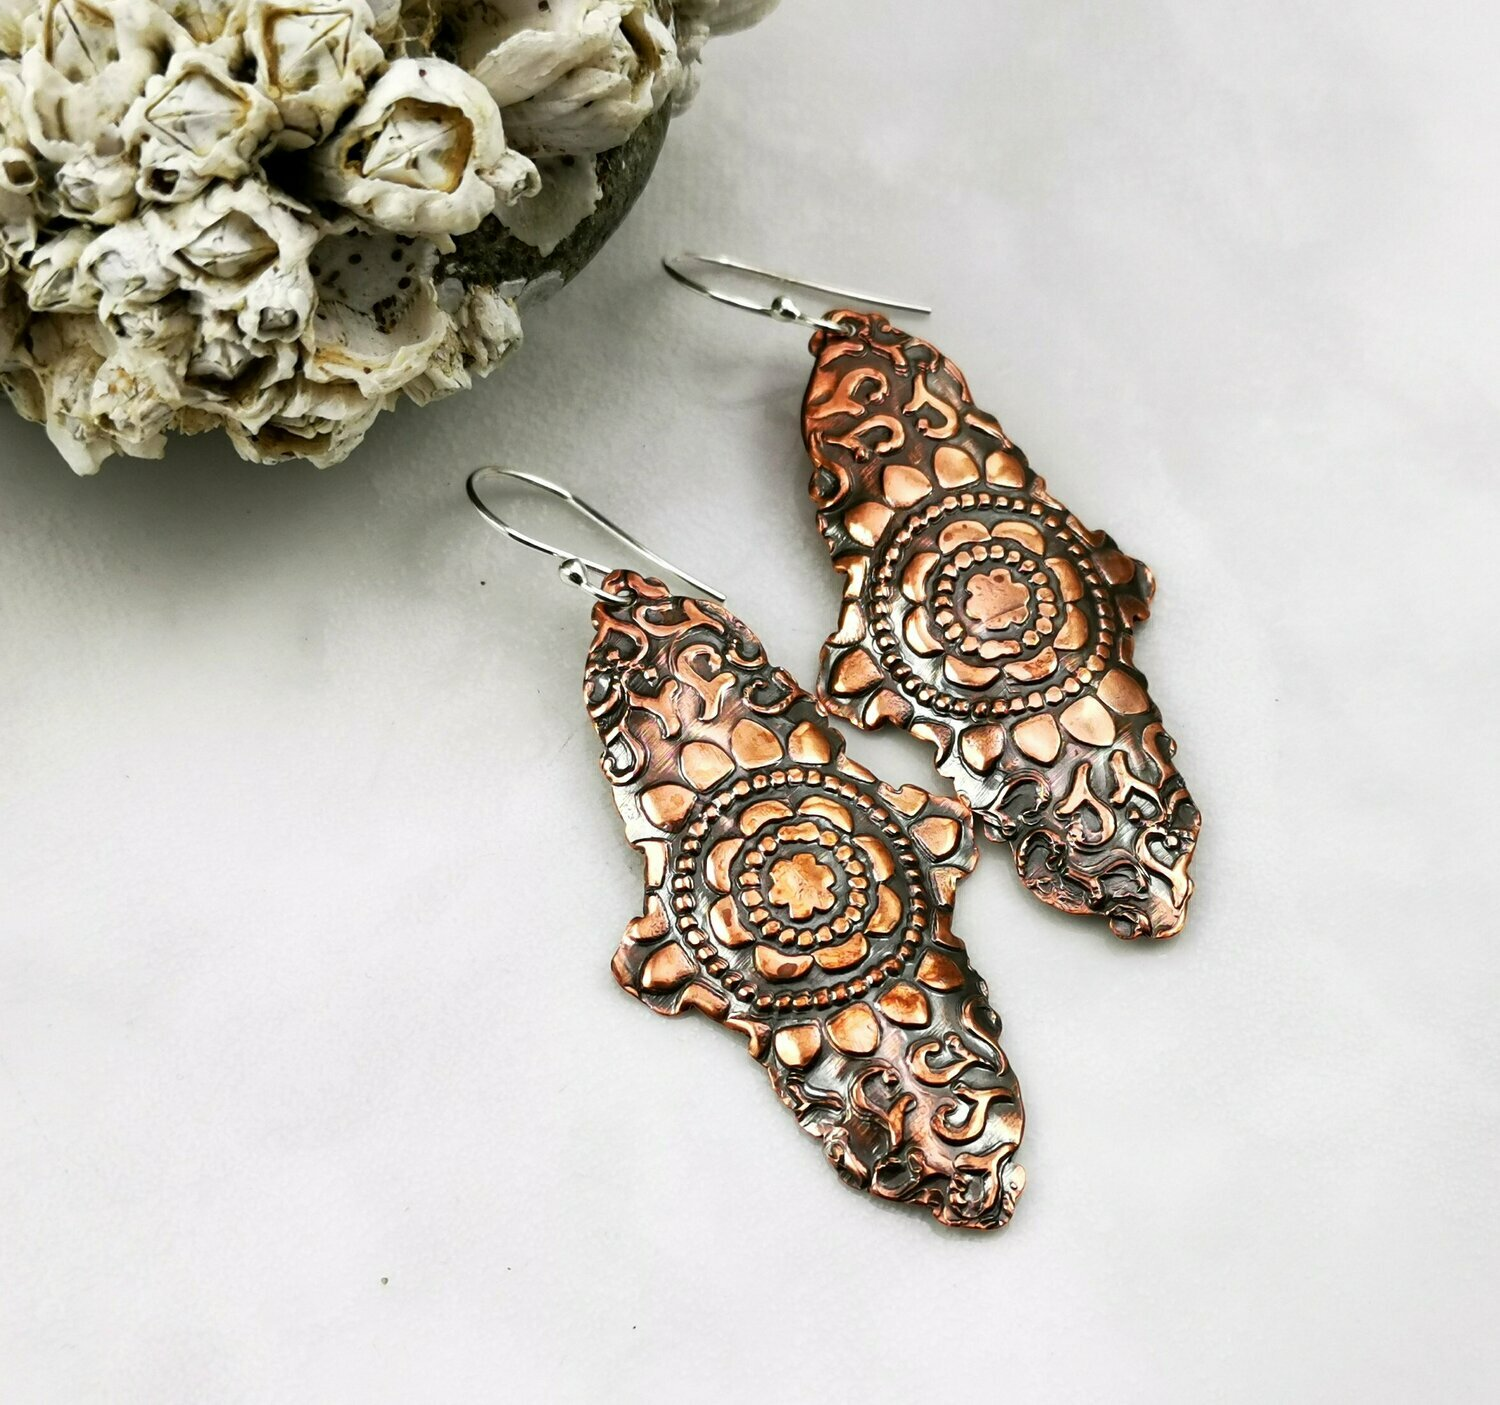 Mandala Earrings, Mandala Jewelry, Mandala Design, Mandala Pattern, Copper Pattern, Copper Texture, Copper Jewelry, Copper Earrings